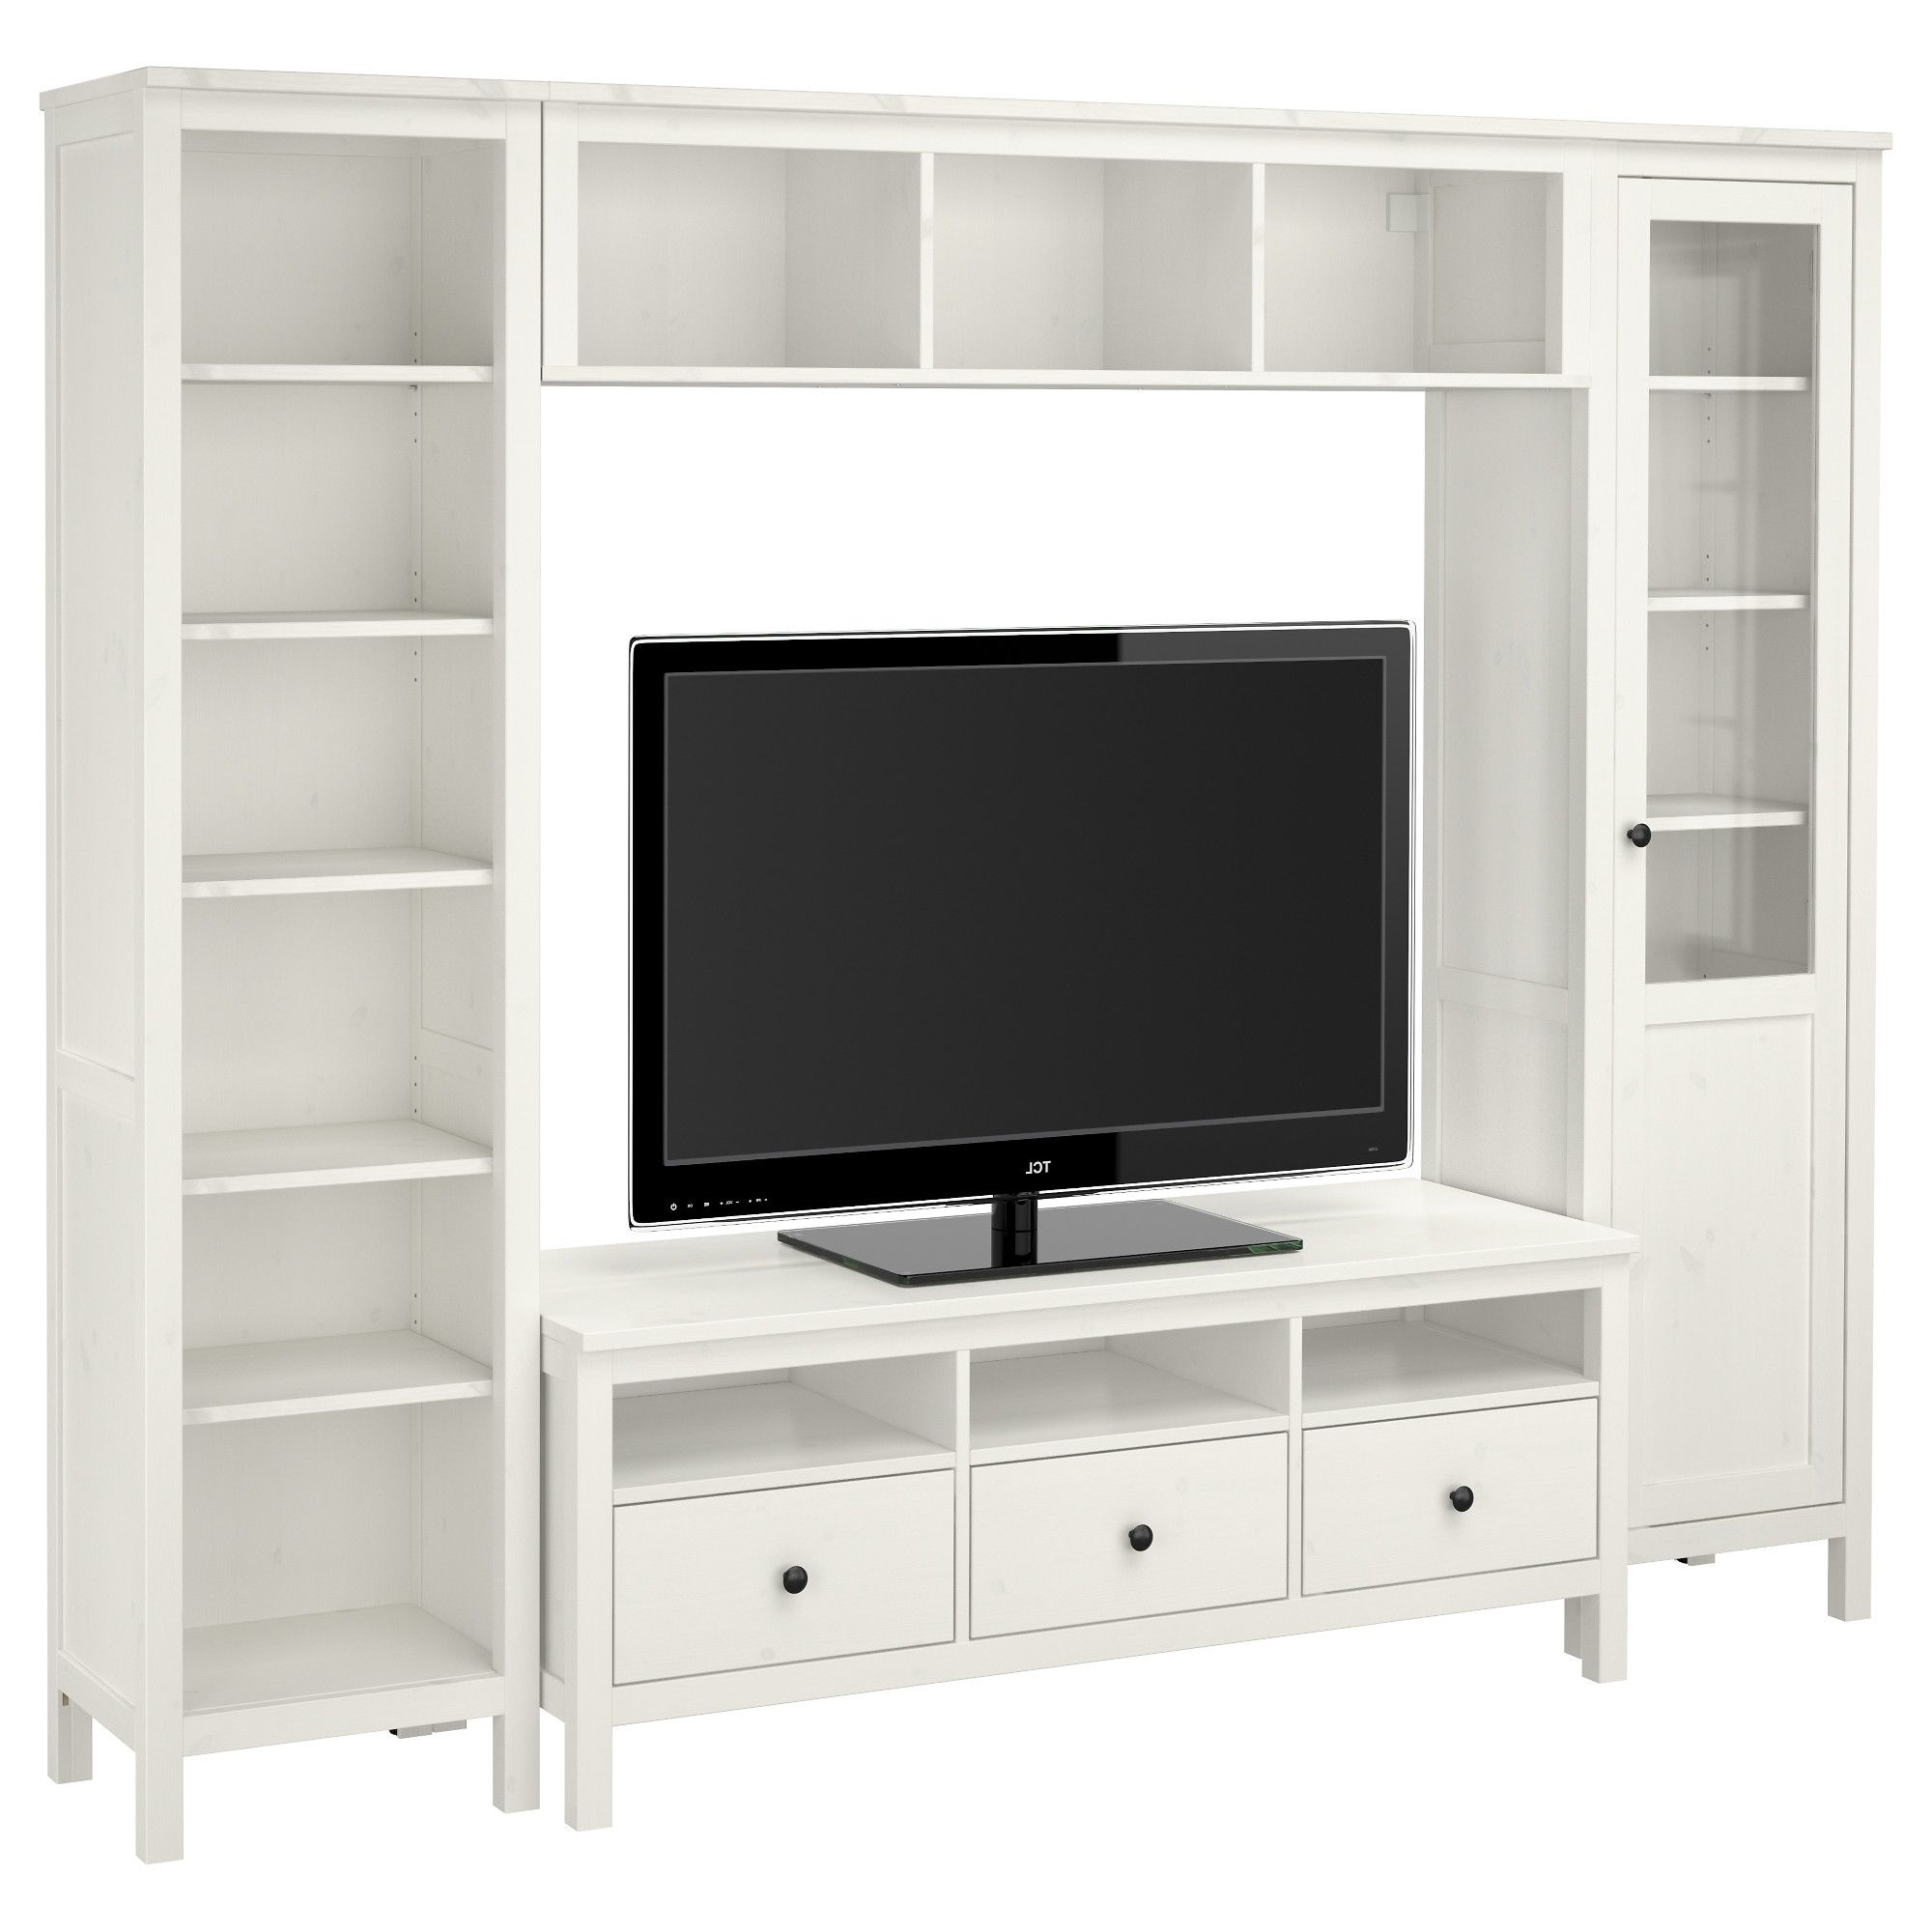 Hemnes Tv Storage Combination – White Stain – Ikea Width: 97 1/4 Pertaining To Dixon White 58 Inch Tv Stands (View 4 of 20)